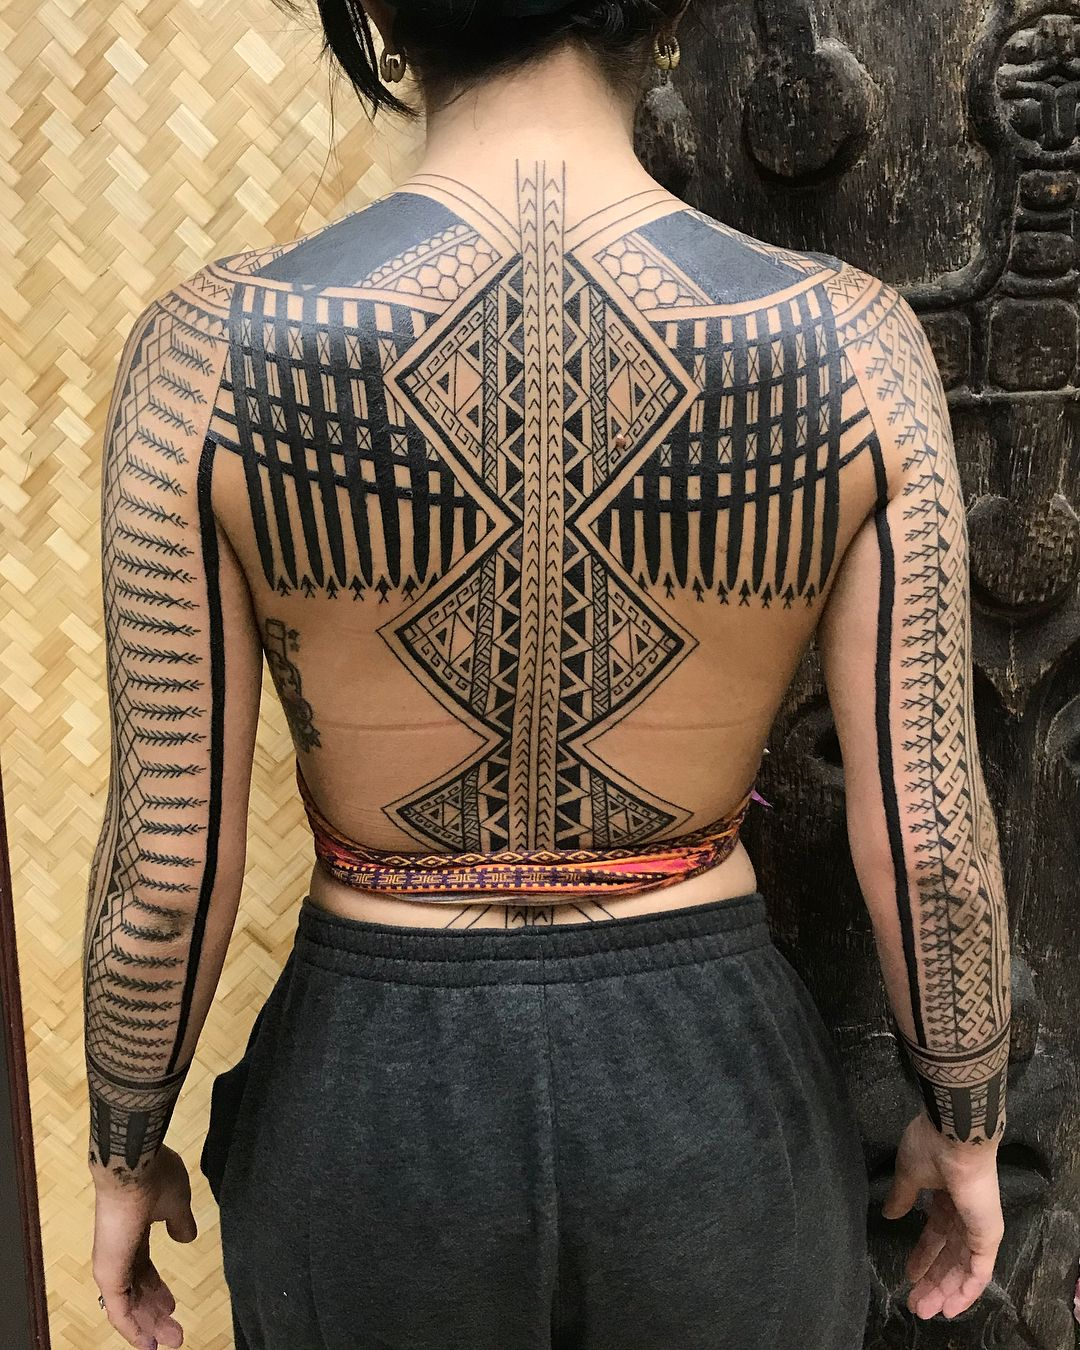 Philippine Traditional Filipino Tattoo Meanings